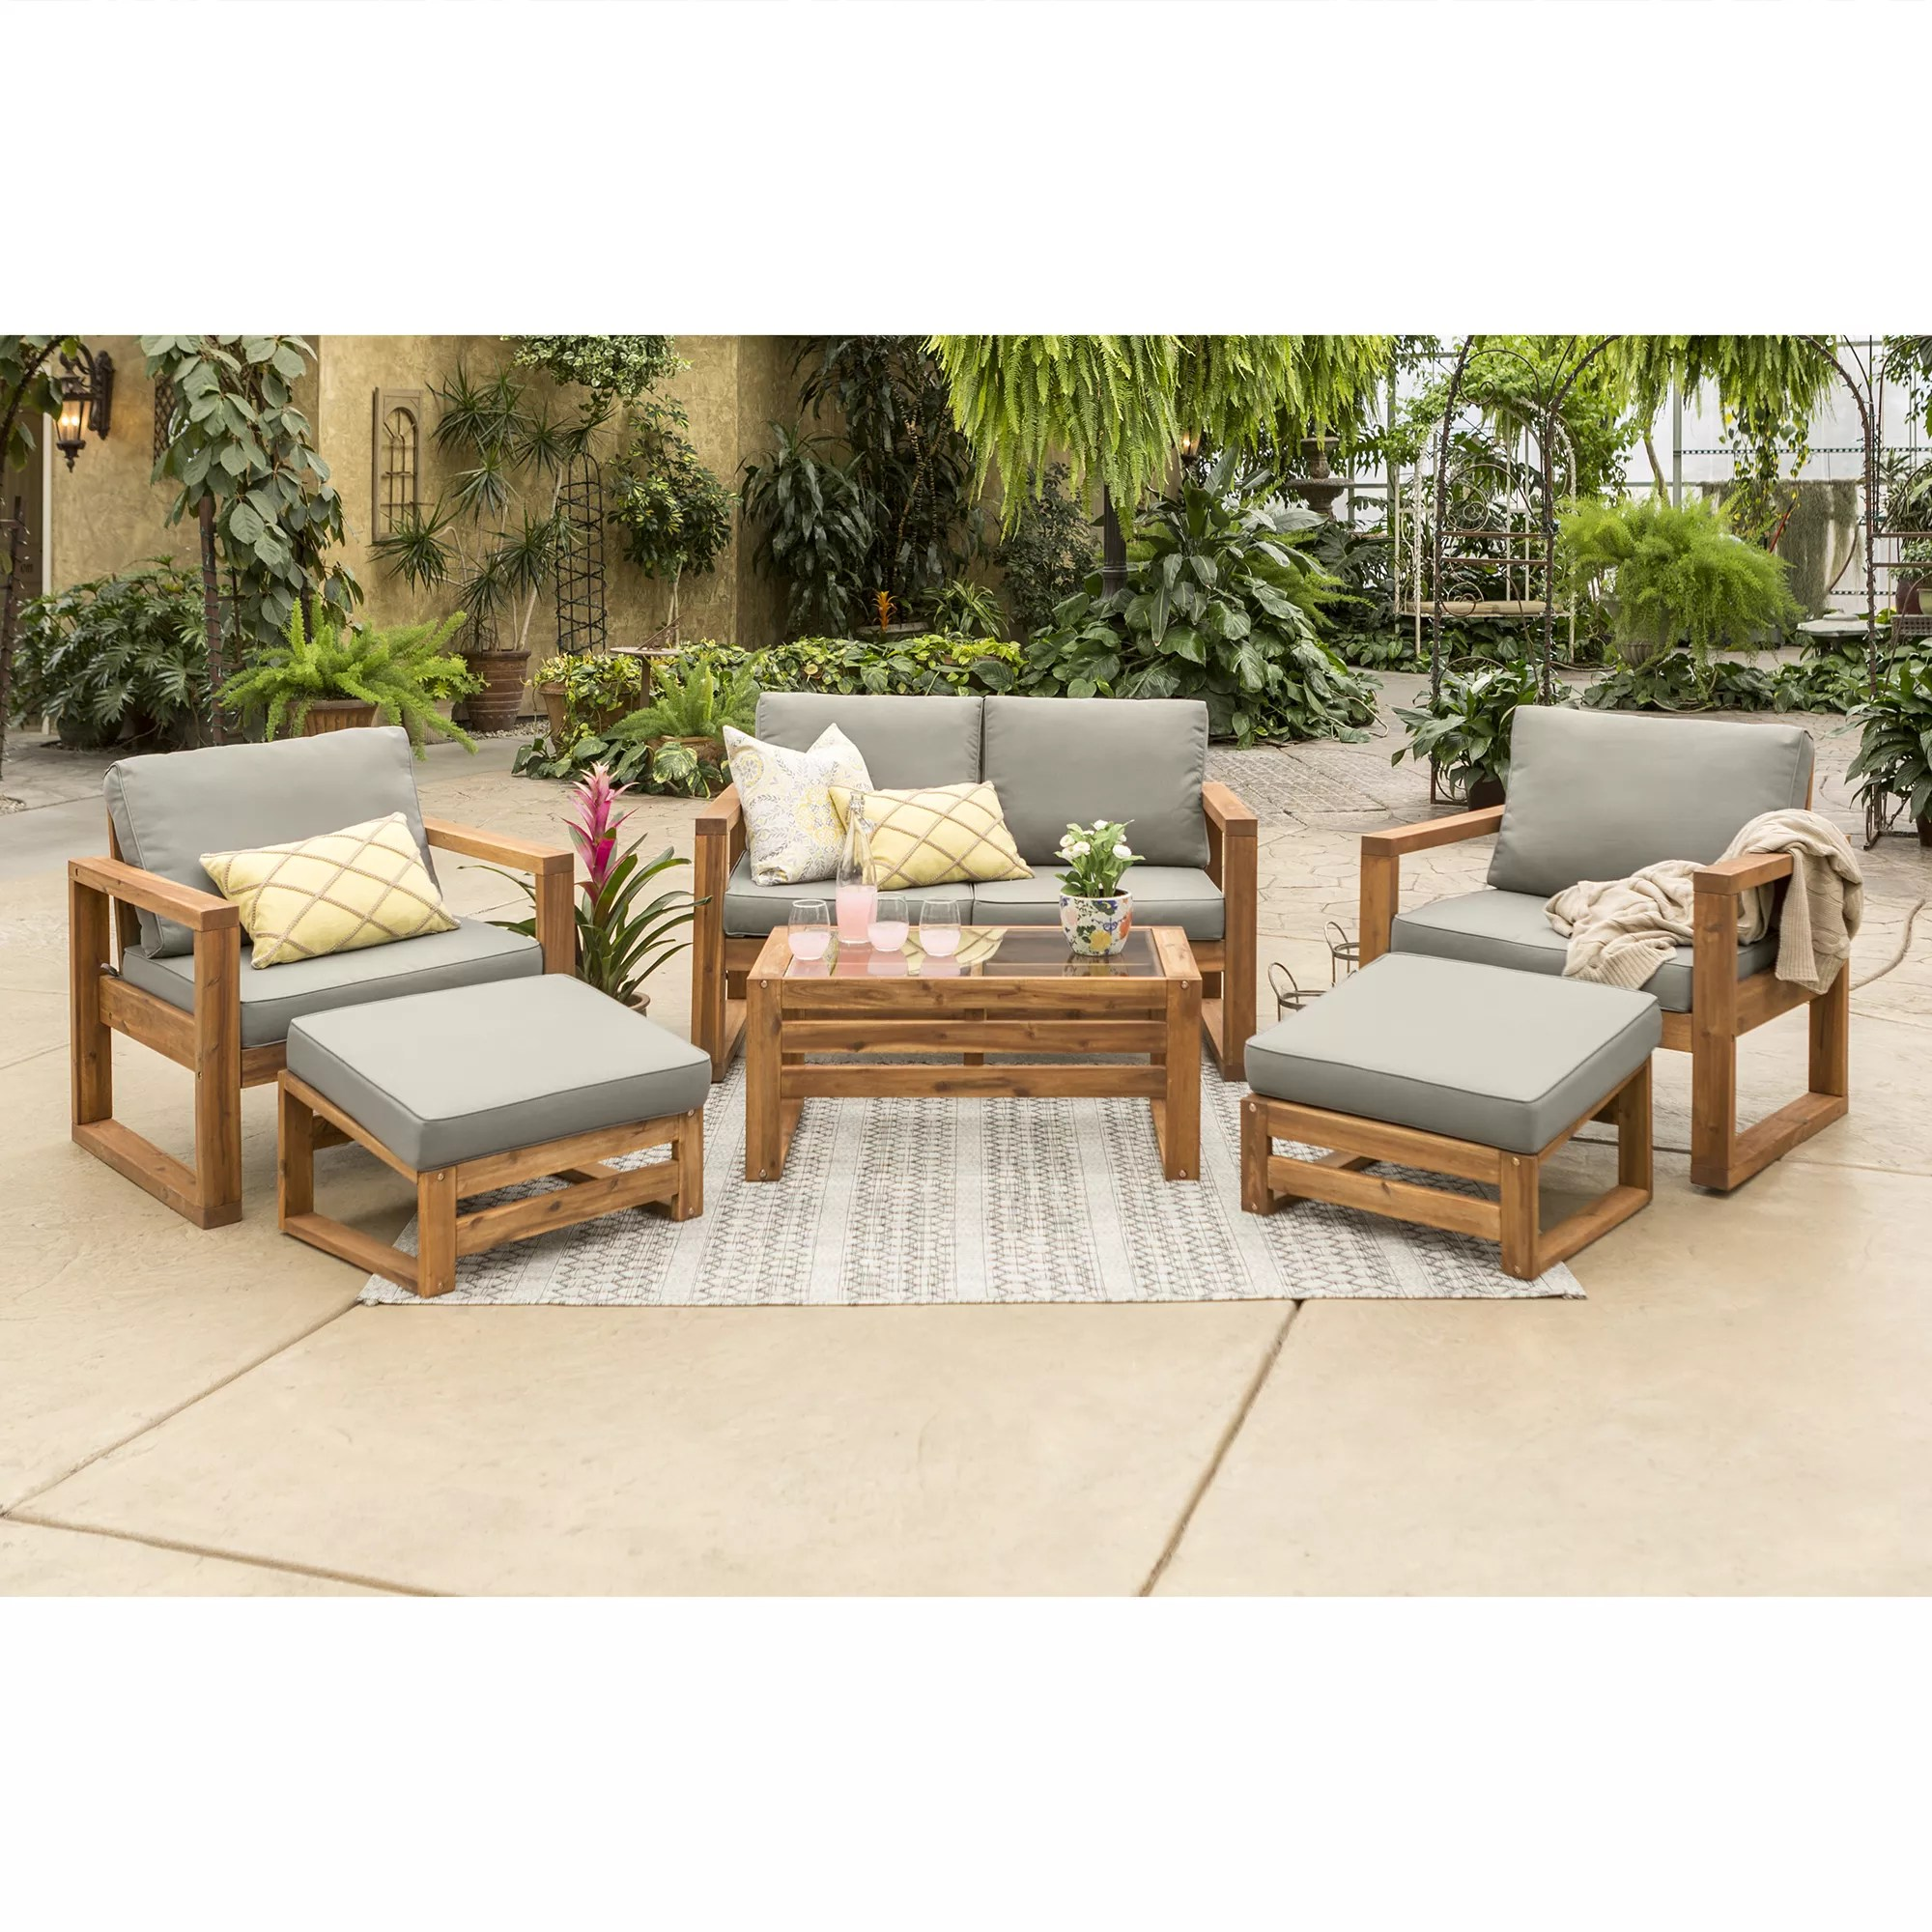 w trends outdoor arbor acacia wood 6 pc chat set